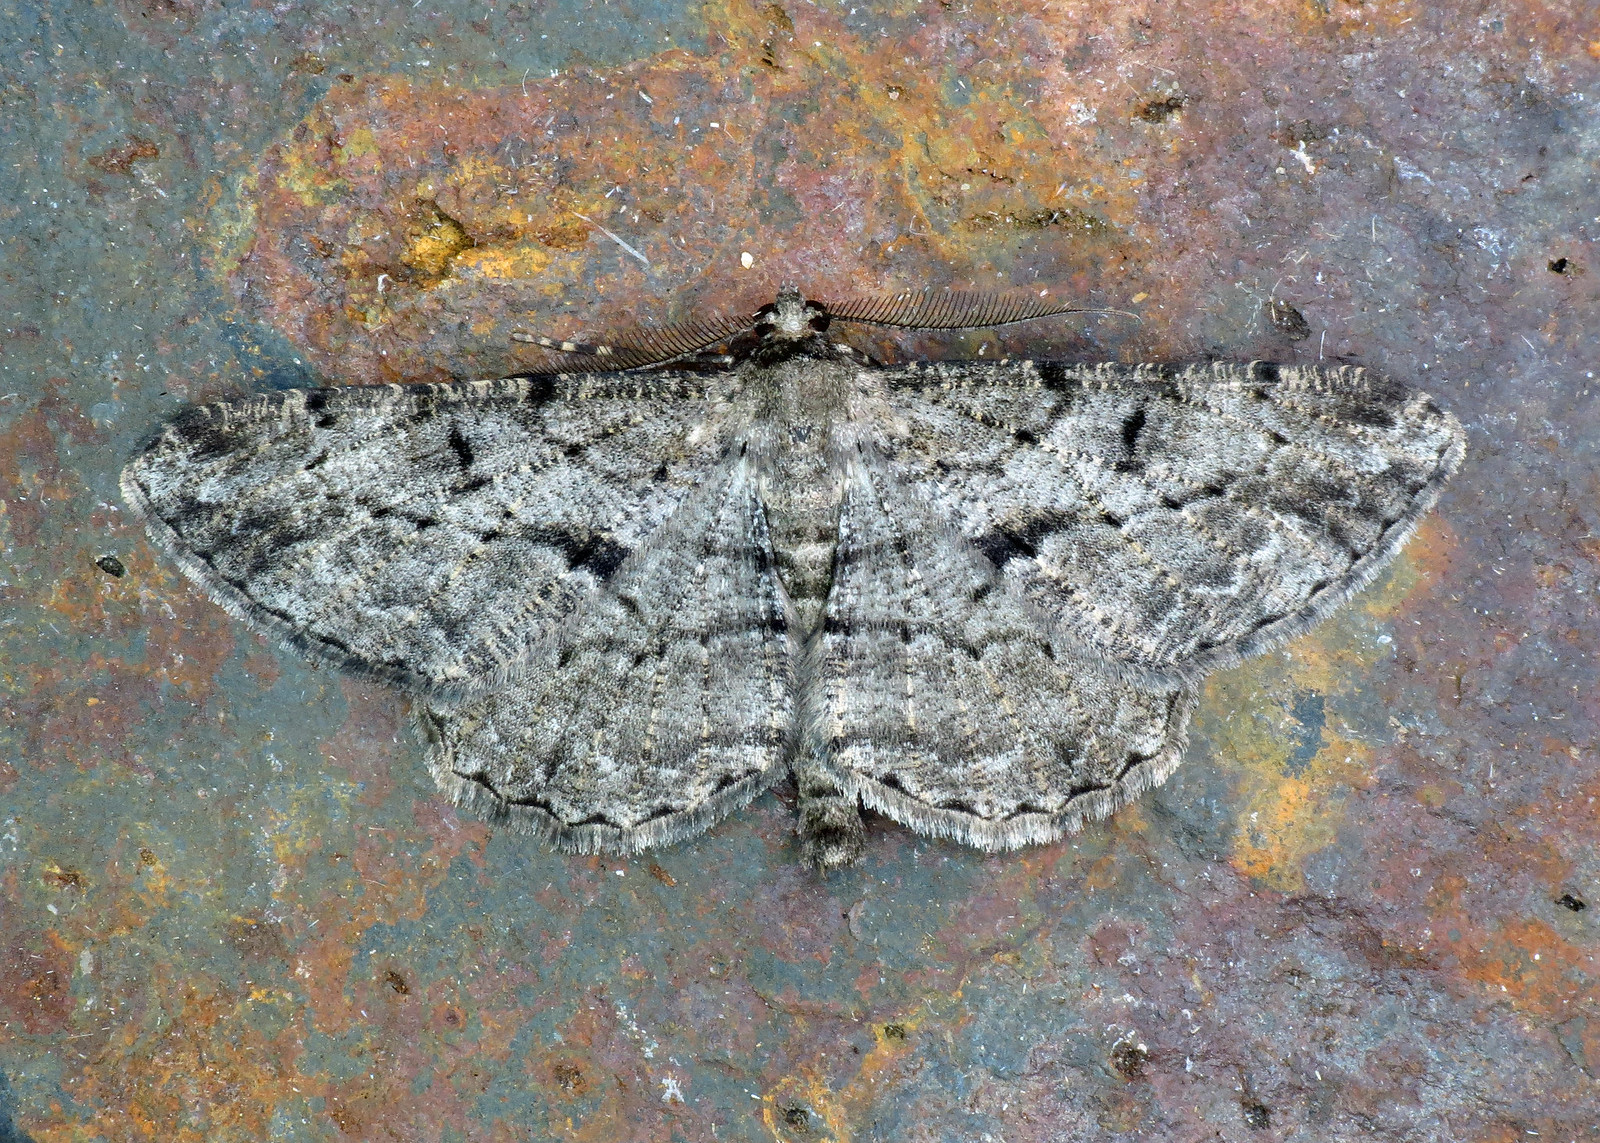 1937 Willow Beauty - Peribatodes rhomboidaria